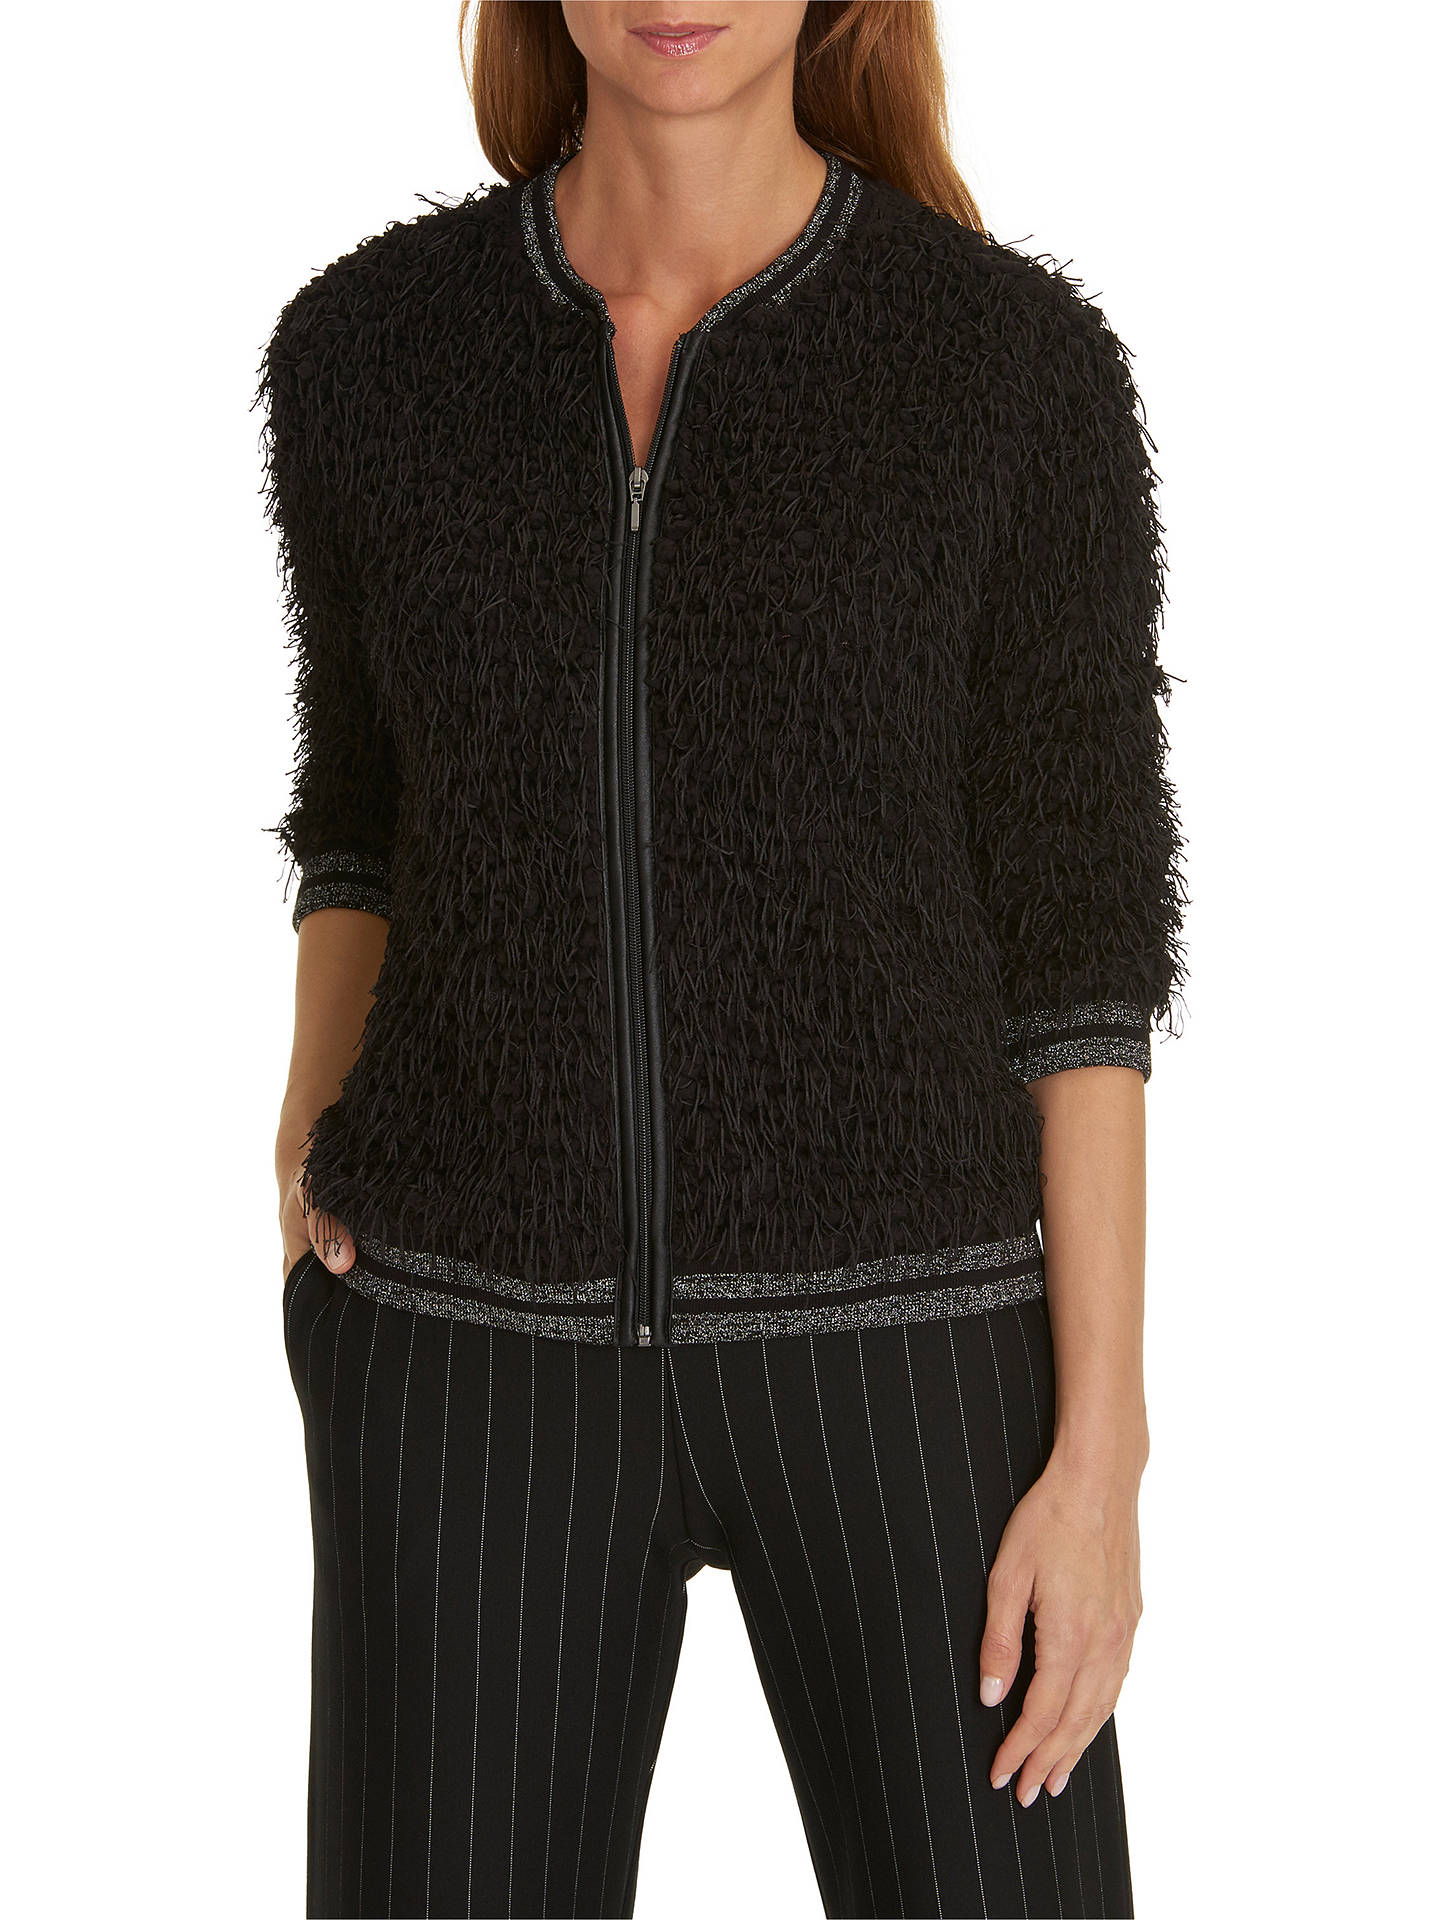 BuyBetty & Co Shaggy Textured Zip Cardigan, Black, 10 Online at johnlewis.com